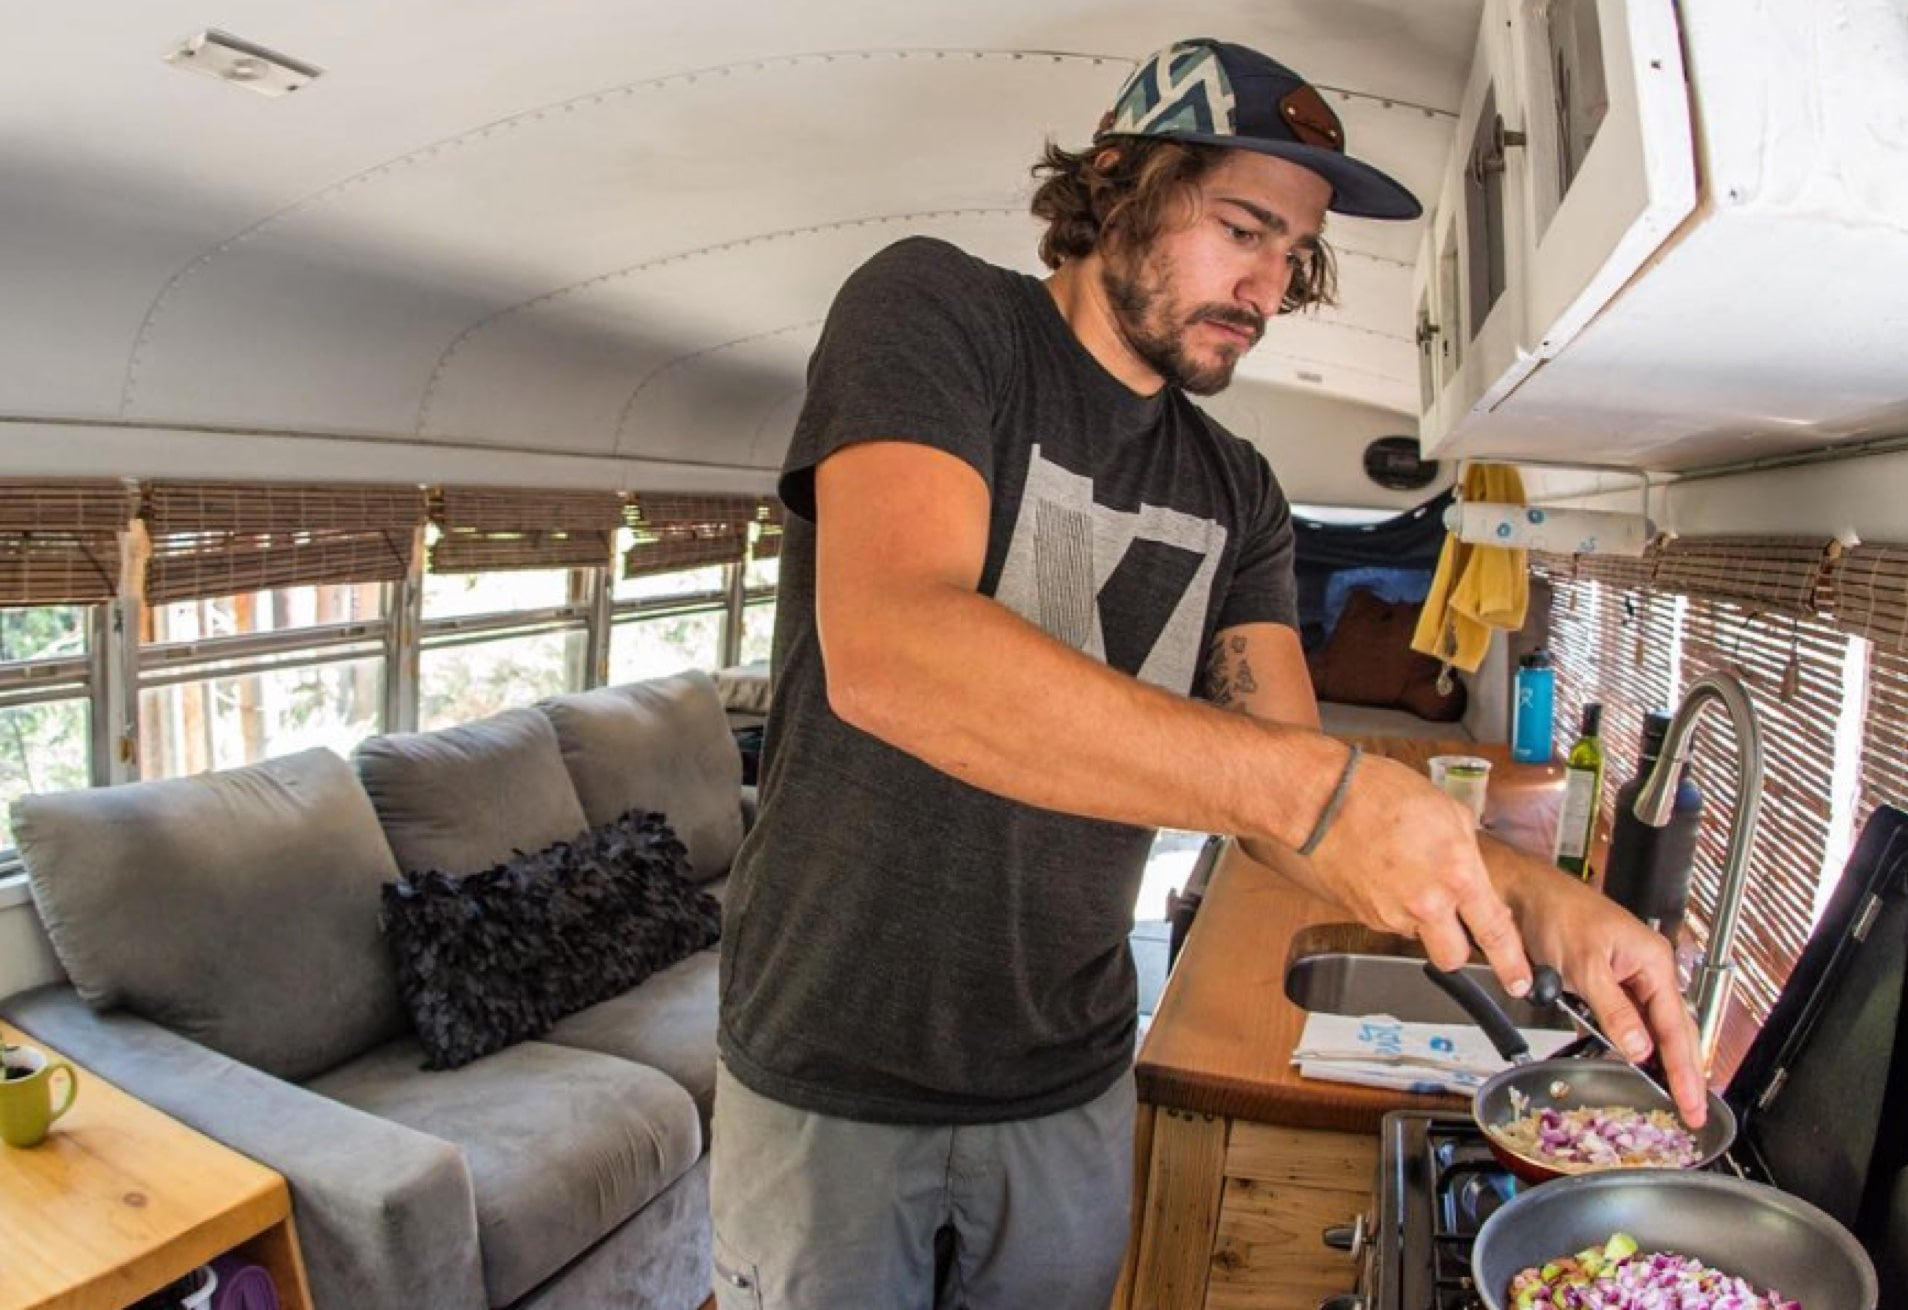 guy cooking in tiny bus home